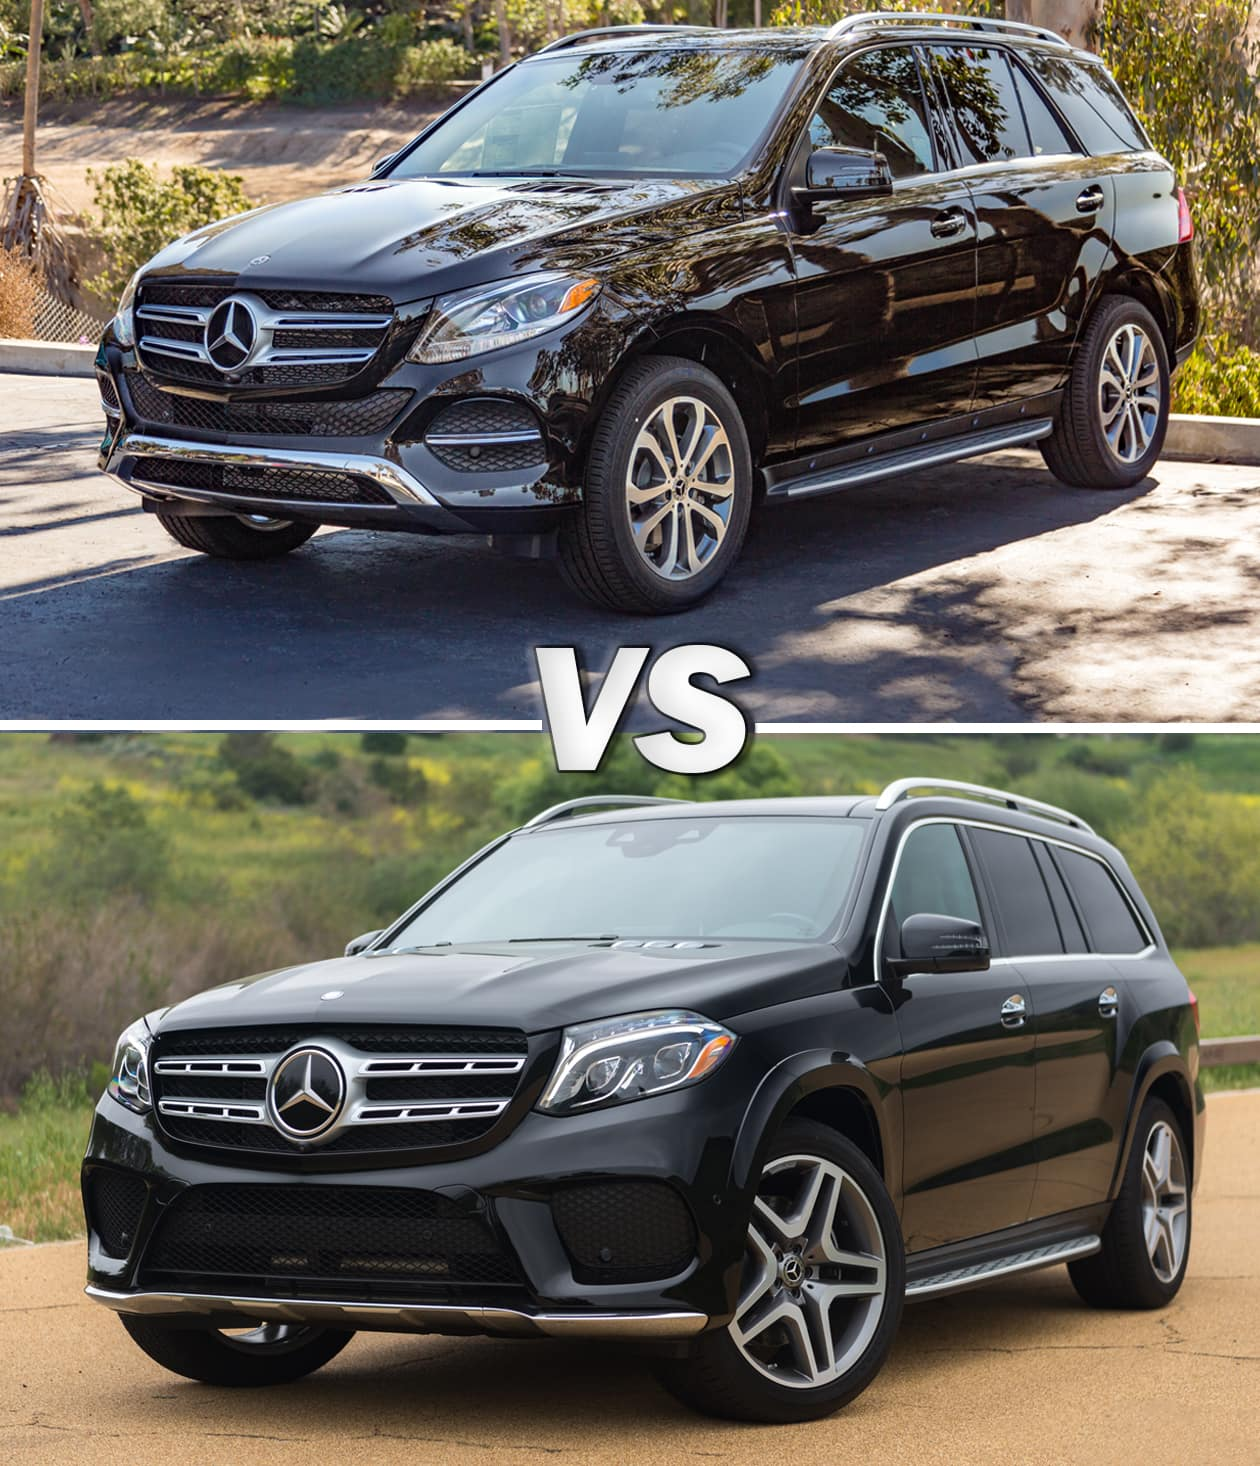 2018 Mercedes-Benz GLE vs 2018 Mercedes-Benz GLS_Black